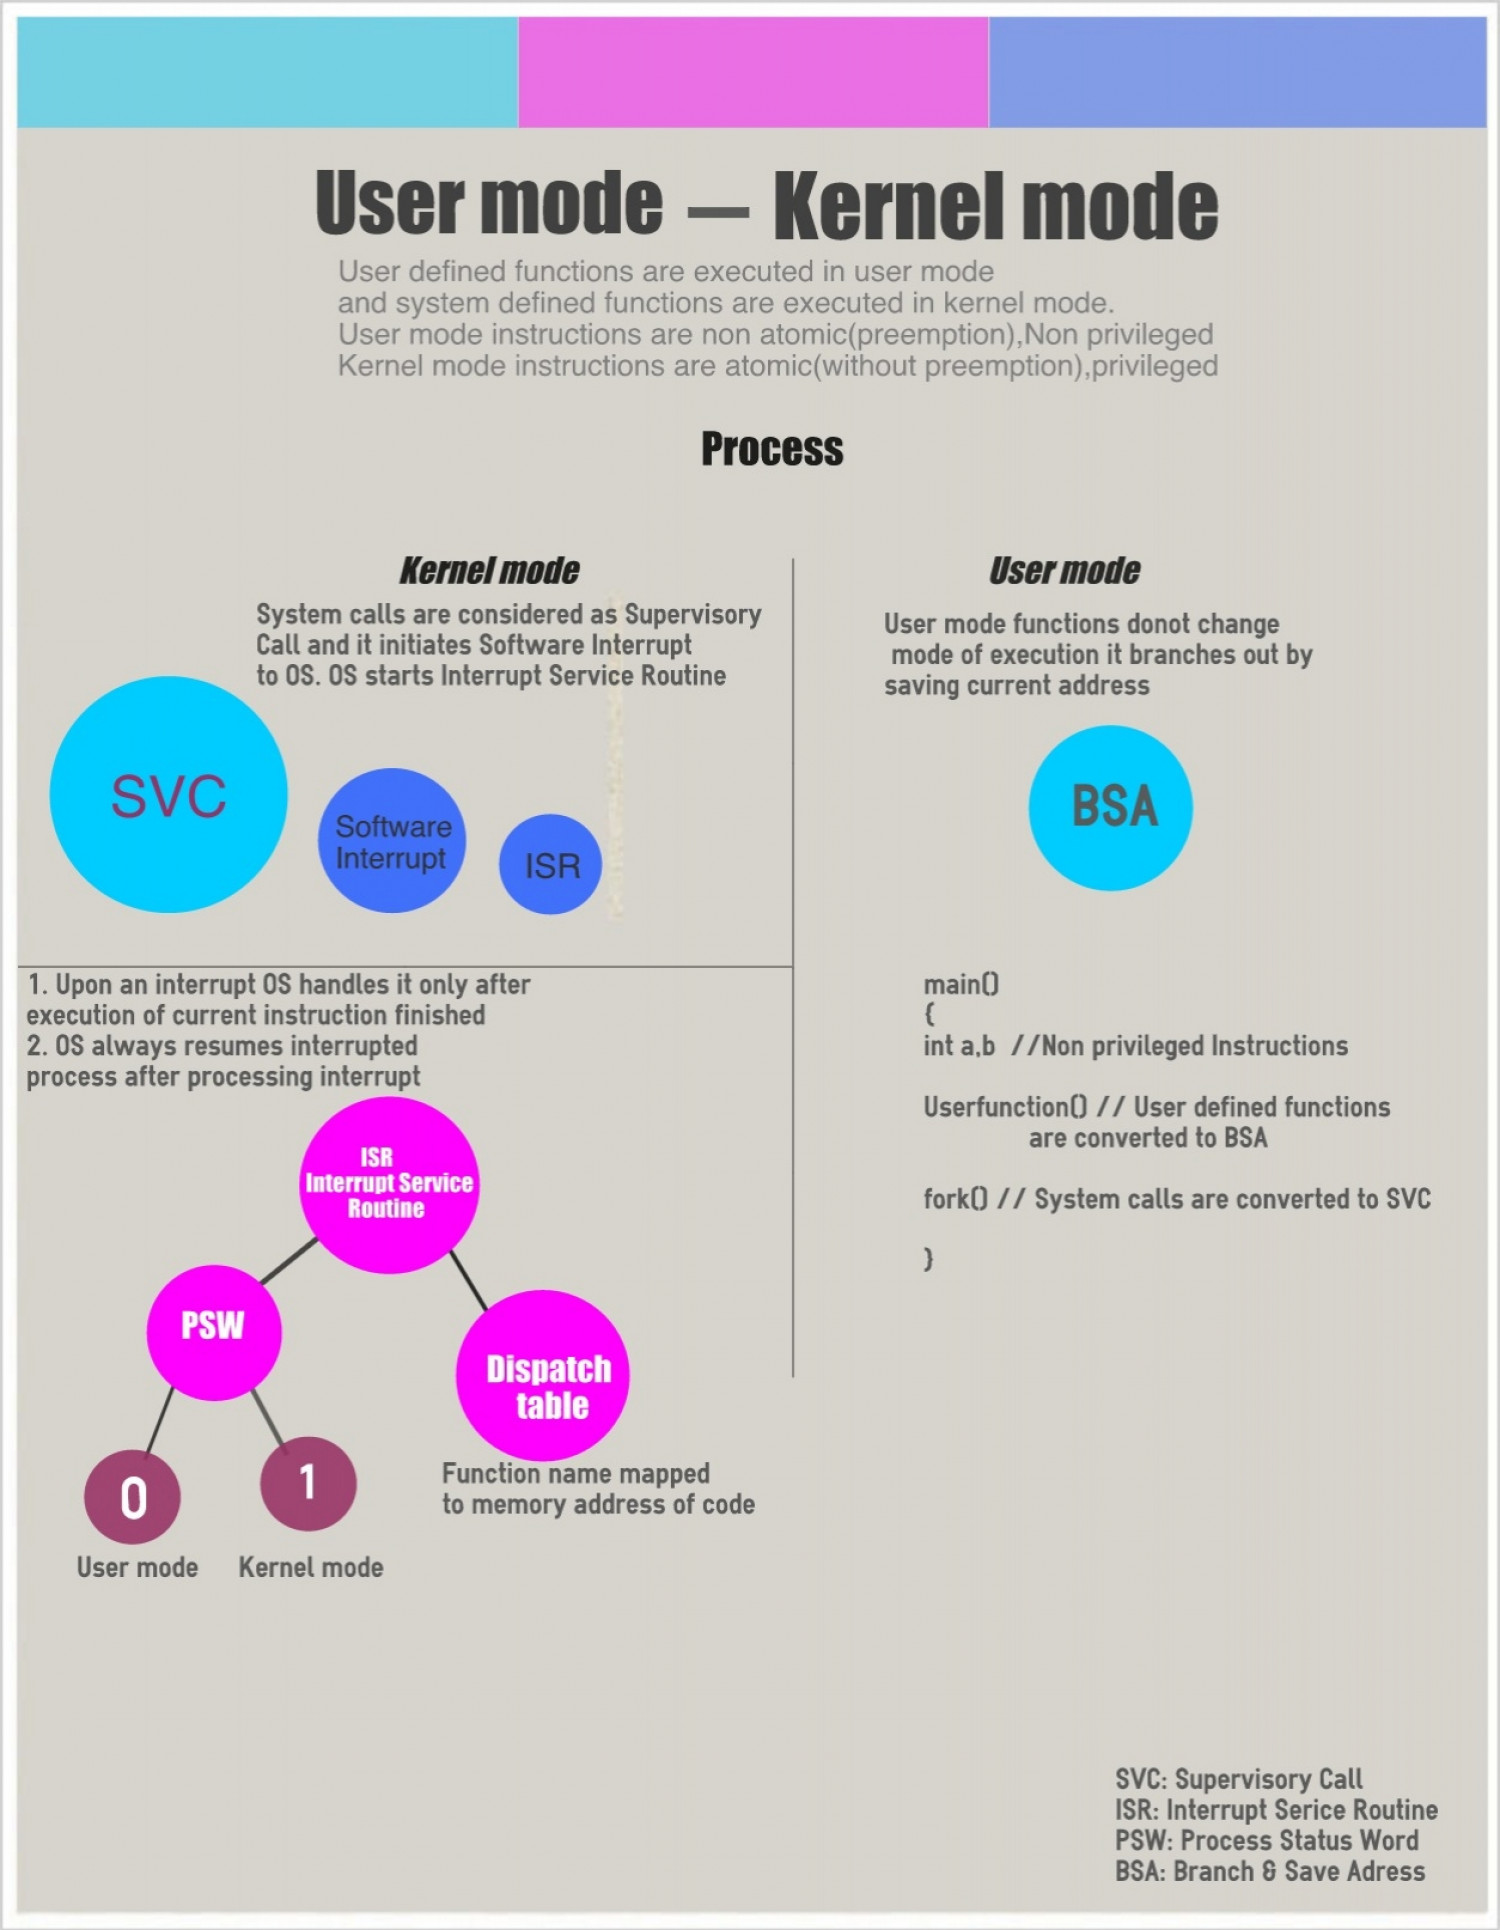 User mode Vs kernel mode Infographic